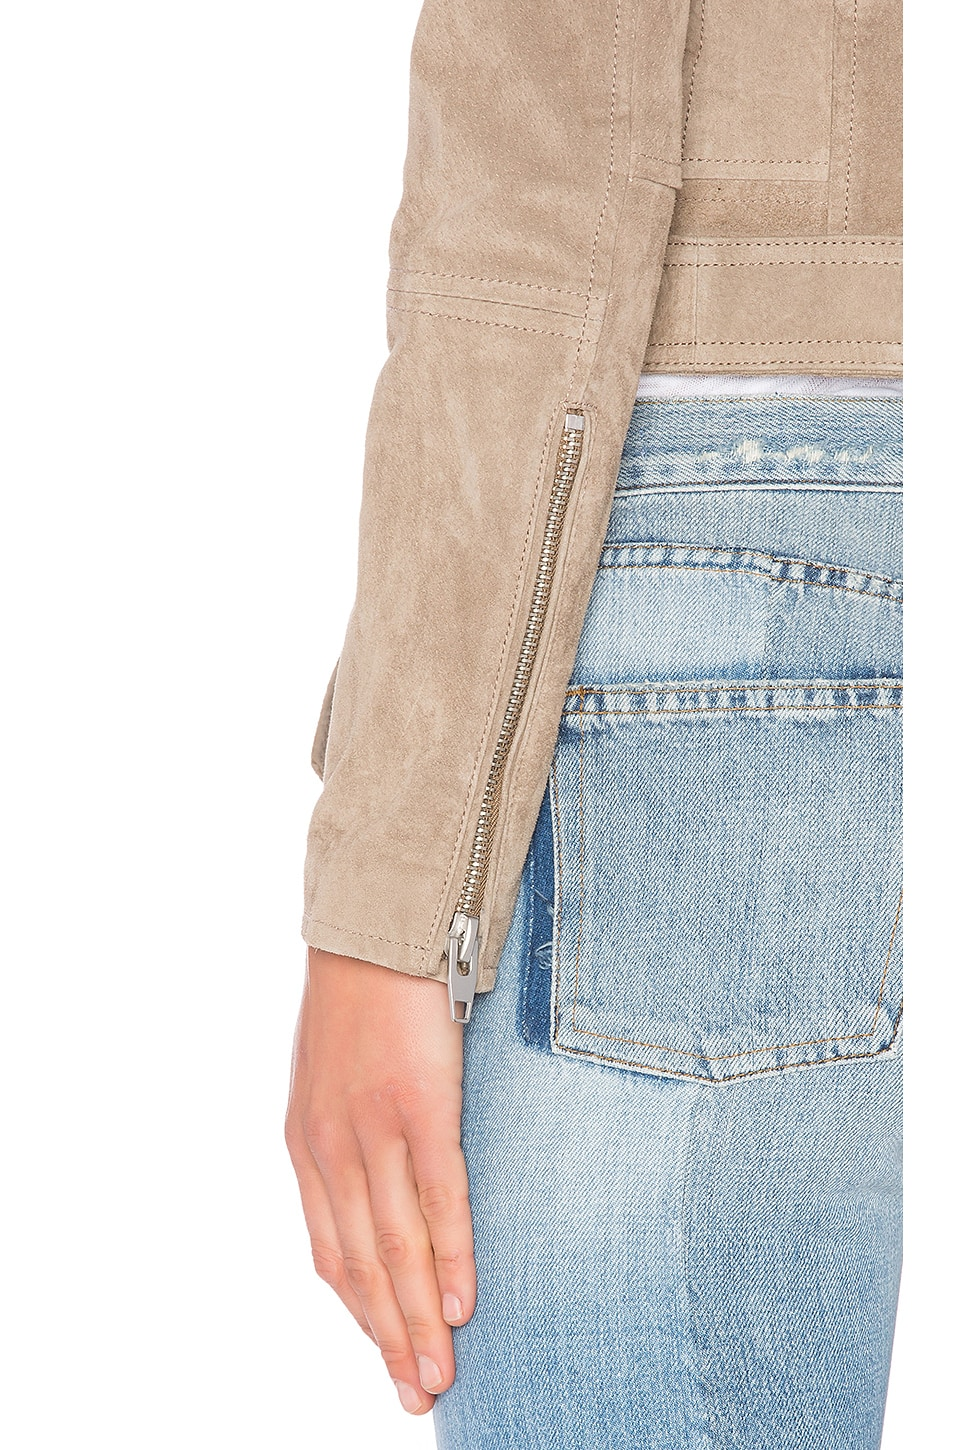 Suede Moto Jacket, view 5, click to view large image.